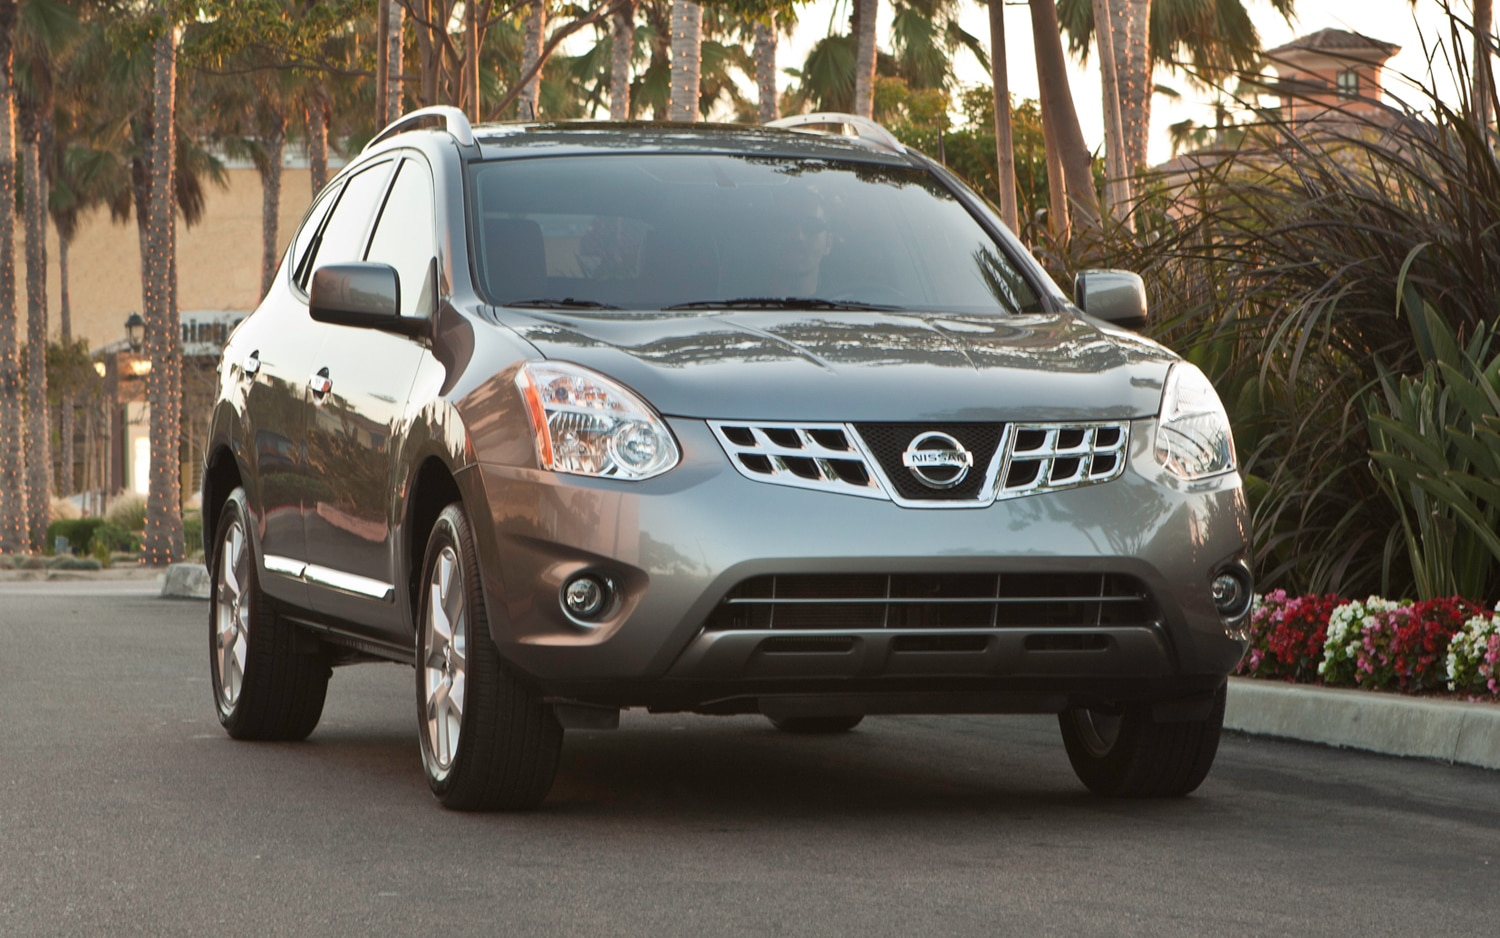 2011 nissan rogue purple gallery hd cars wallpaper 2011 nissan rogue purple image collections hd cars wallpaper 2011 nissan rogue purple image collections hd cars wallpaper 2011 nissan rogue purple image vanachro Images